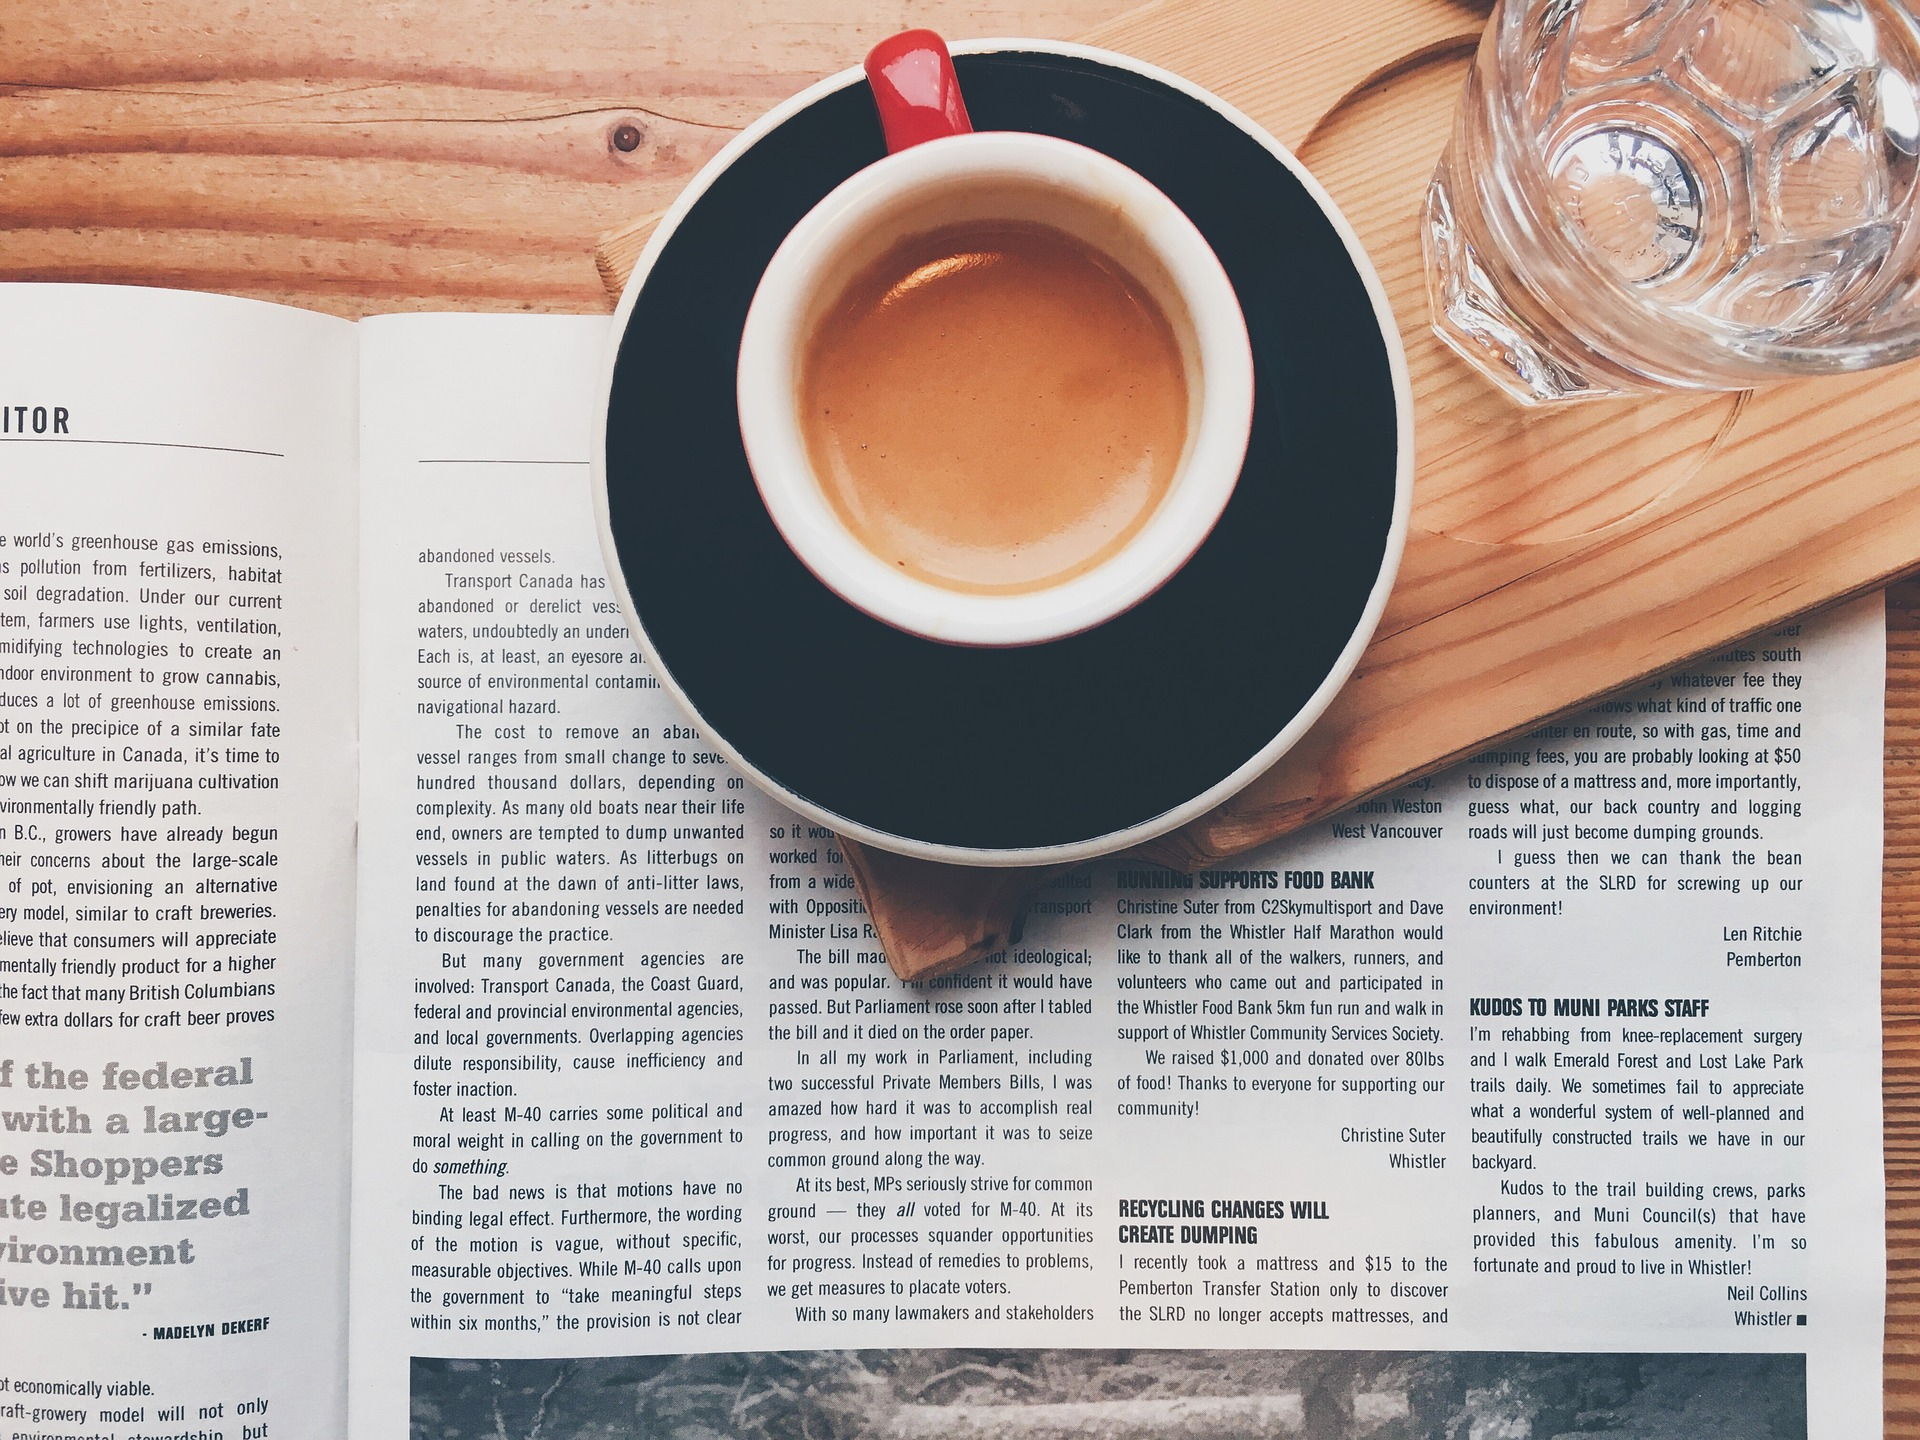 Photo of a cup of coffee on top of an open magazine